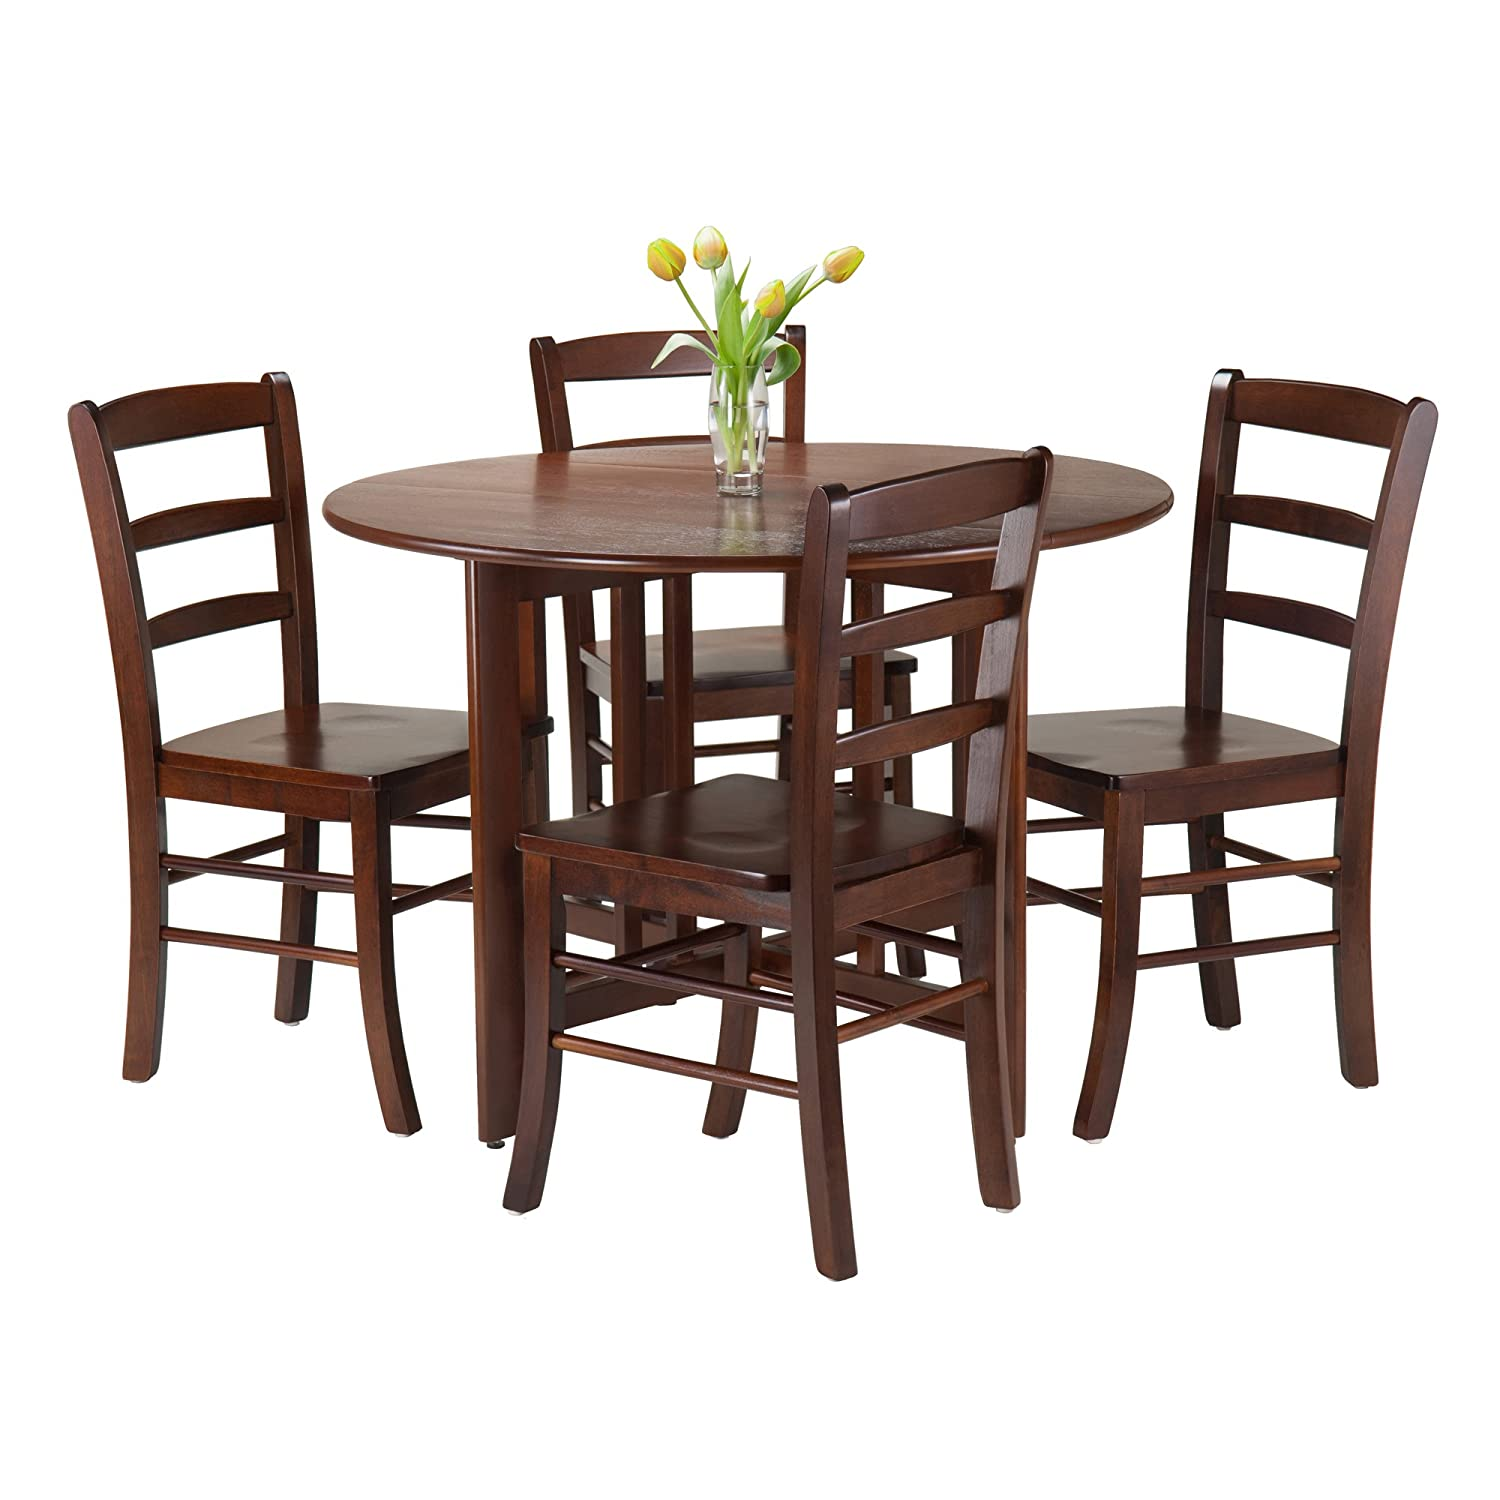 Amazoncom Winsome 5 Piece Alamo Round Drop Leaf Table With 4